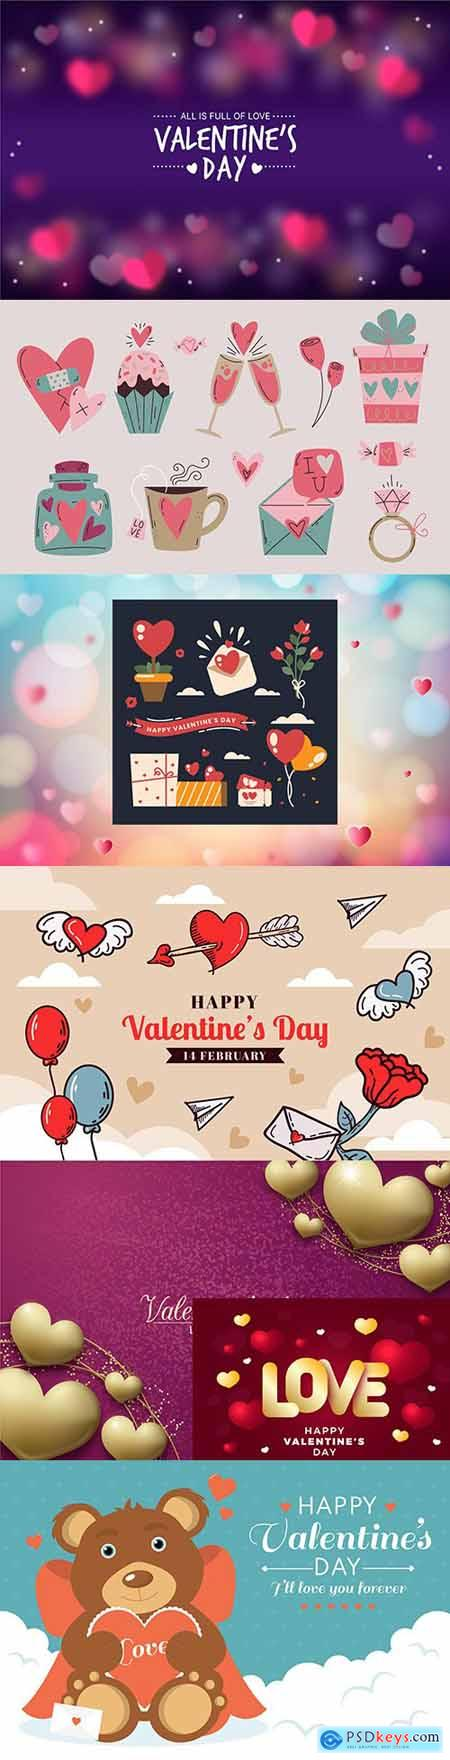 Valentines Day design background and elements collection